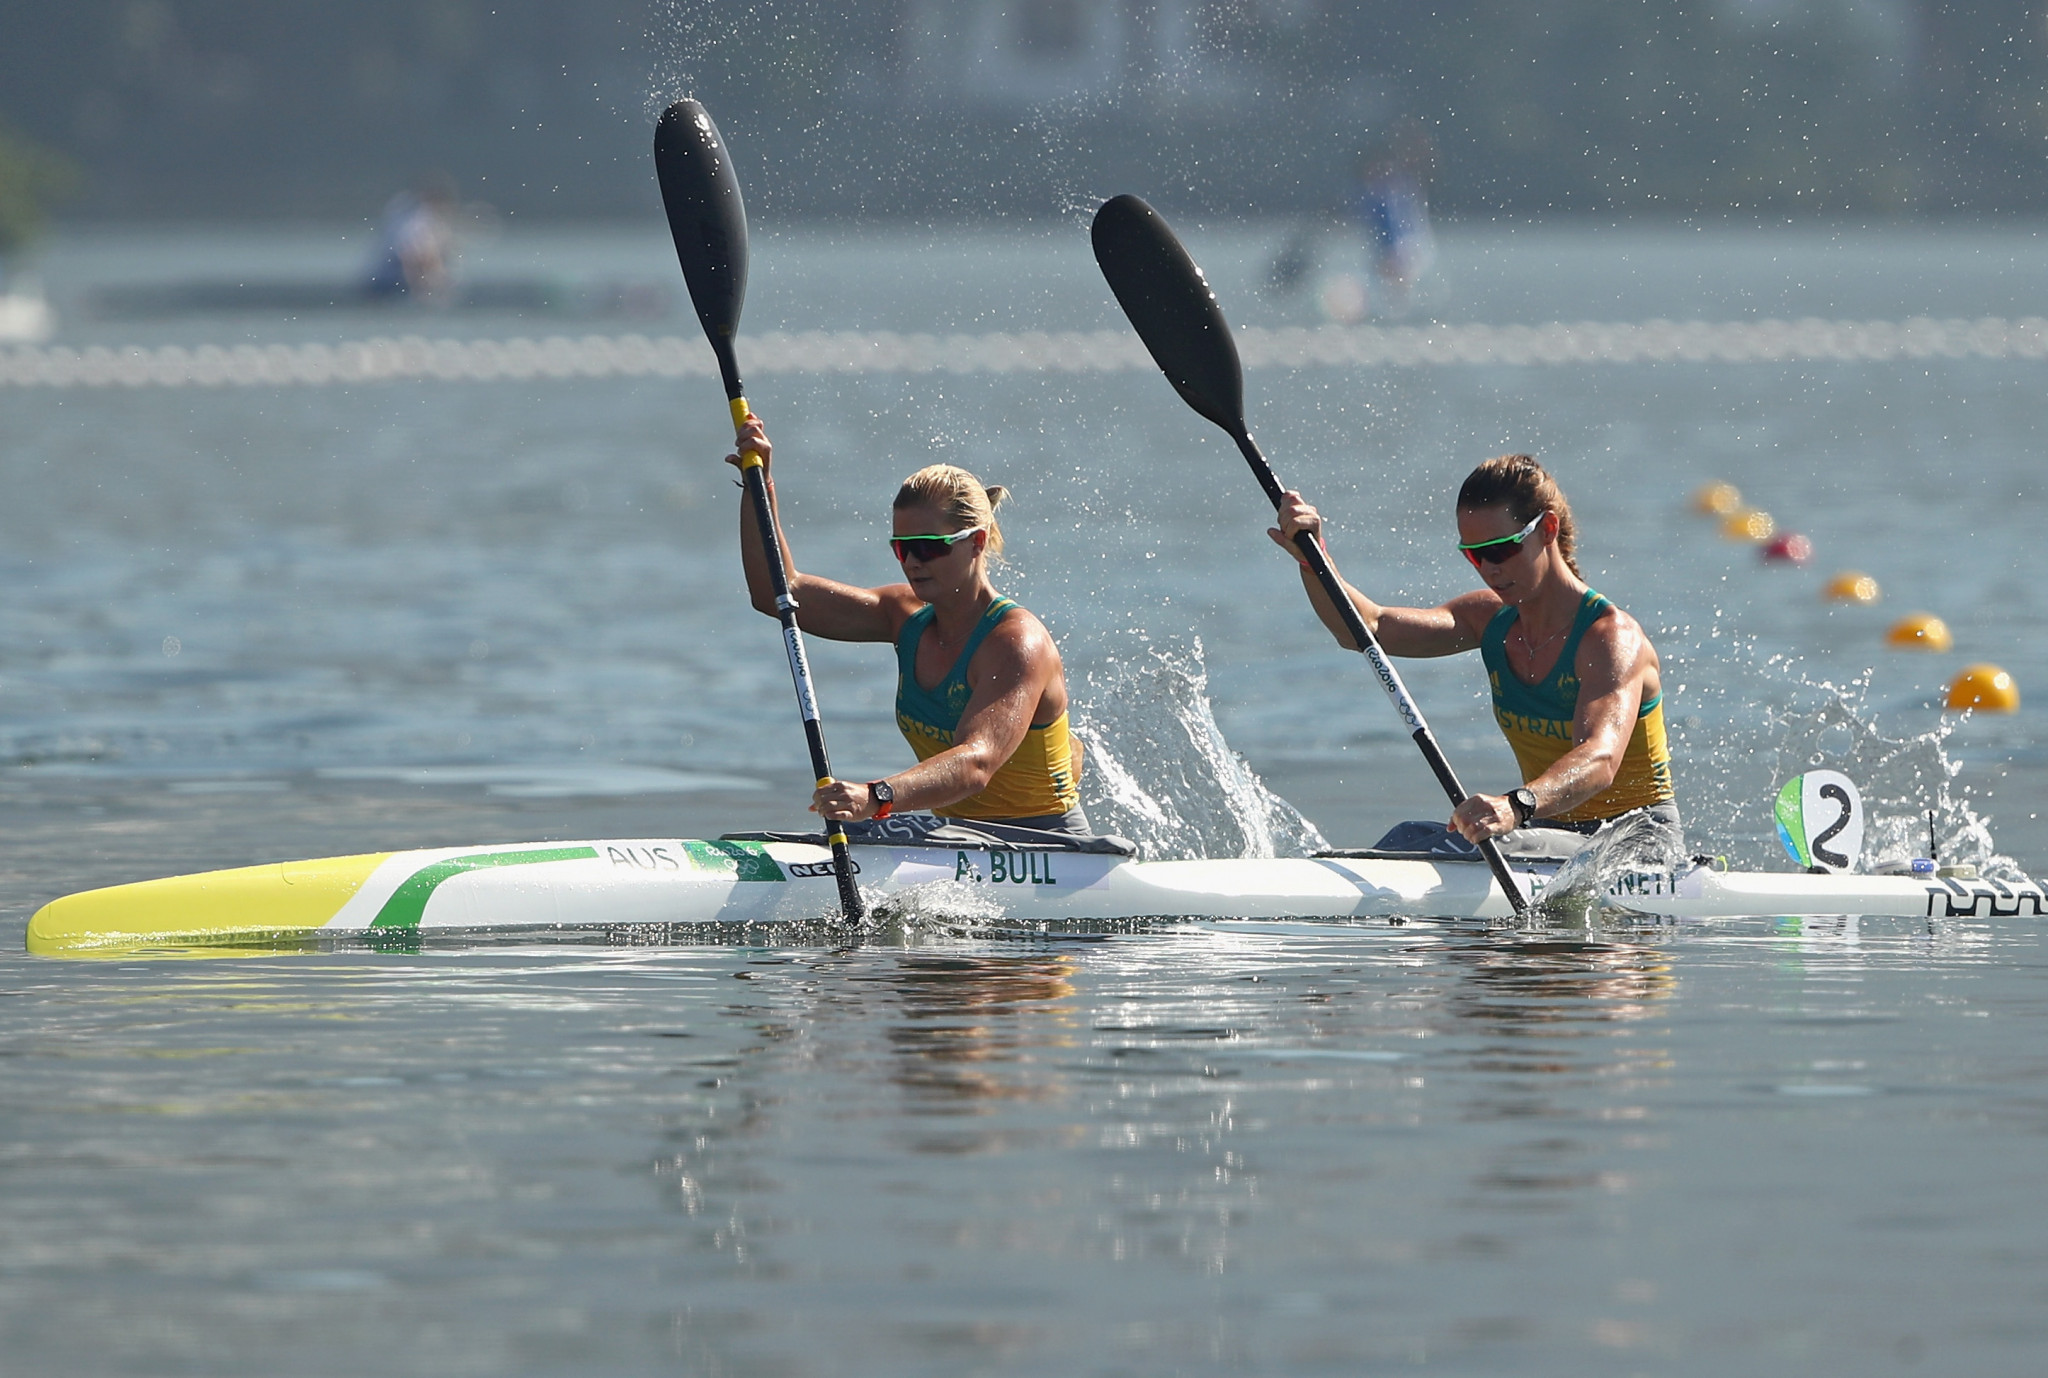 The only canoe sprint event on the ICF calendar set to go ahead in 2020 is the non-Olympic World Championships in Hungary in September ©Getty Images